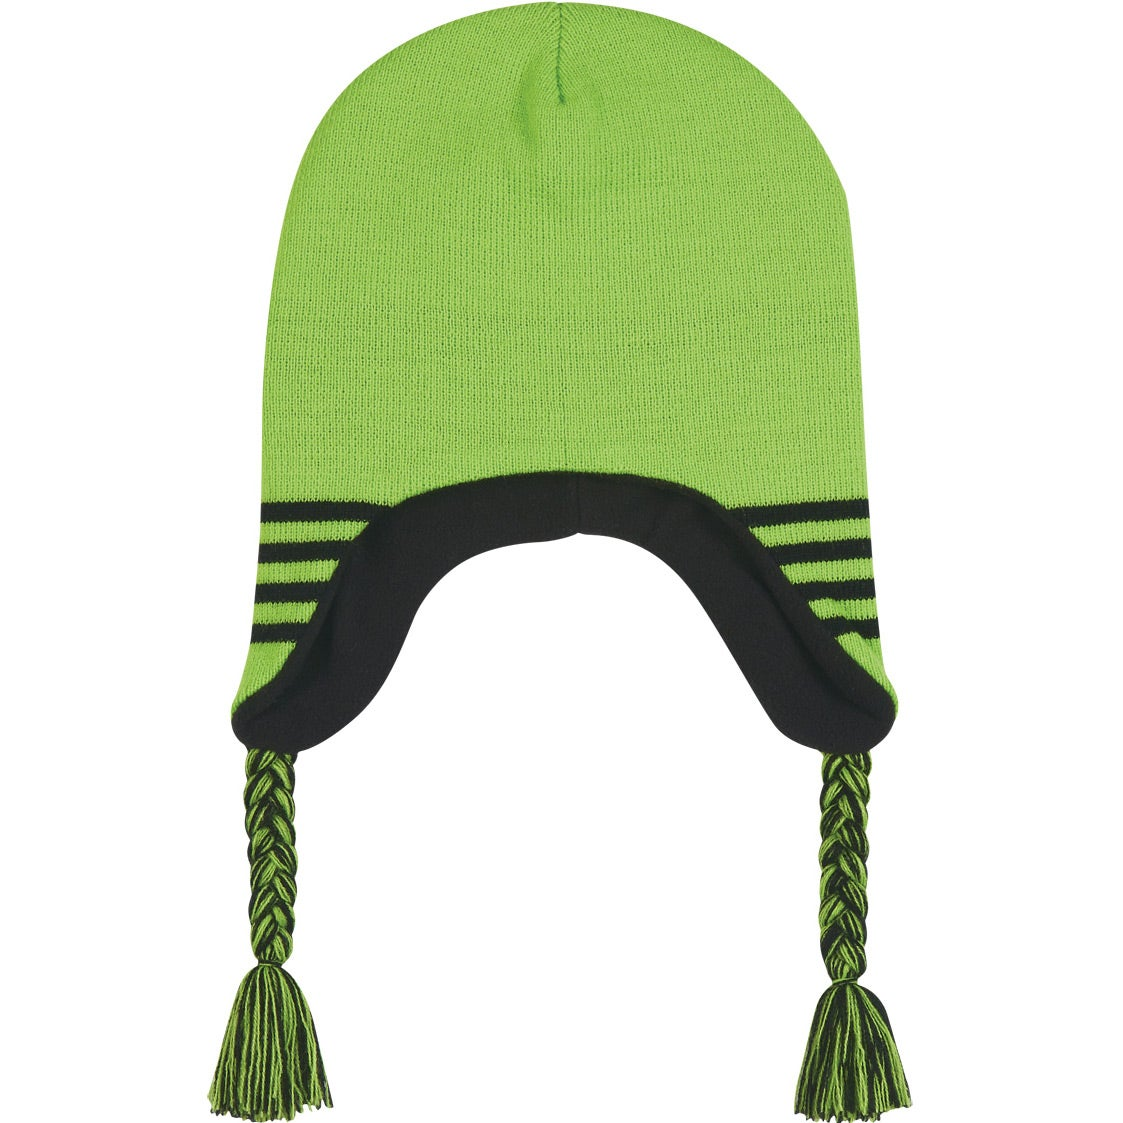 b91c11a5 CLICK HERE to Order Ski Beanie With Ear Flaps Printed with Your Logo for  $4.86 Ea.